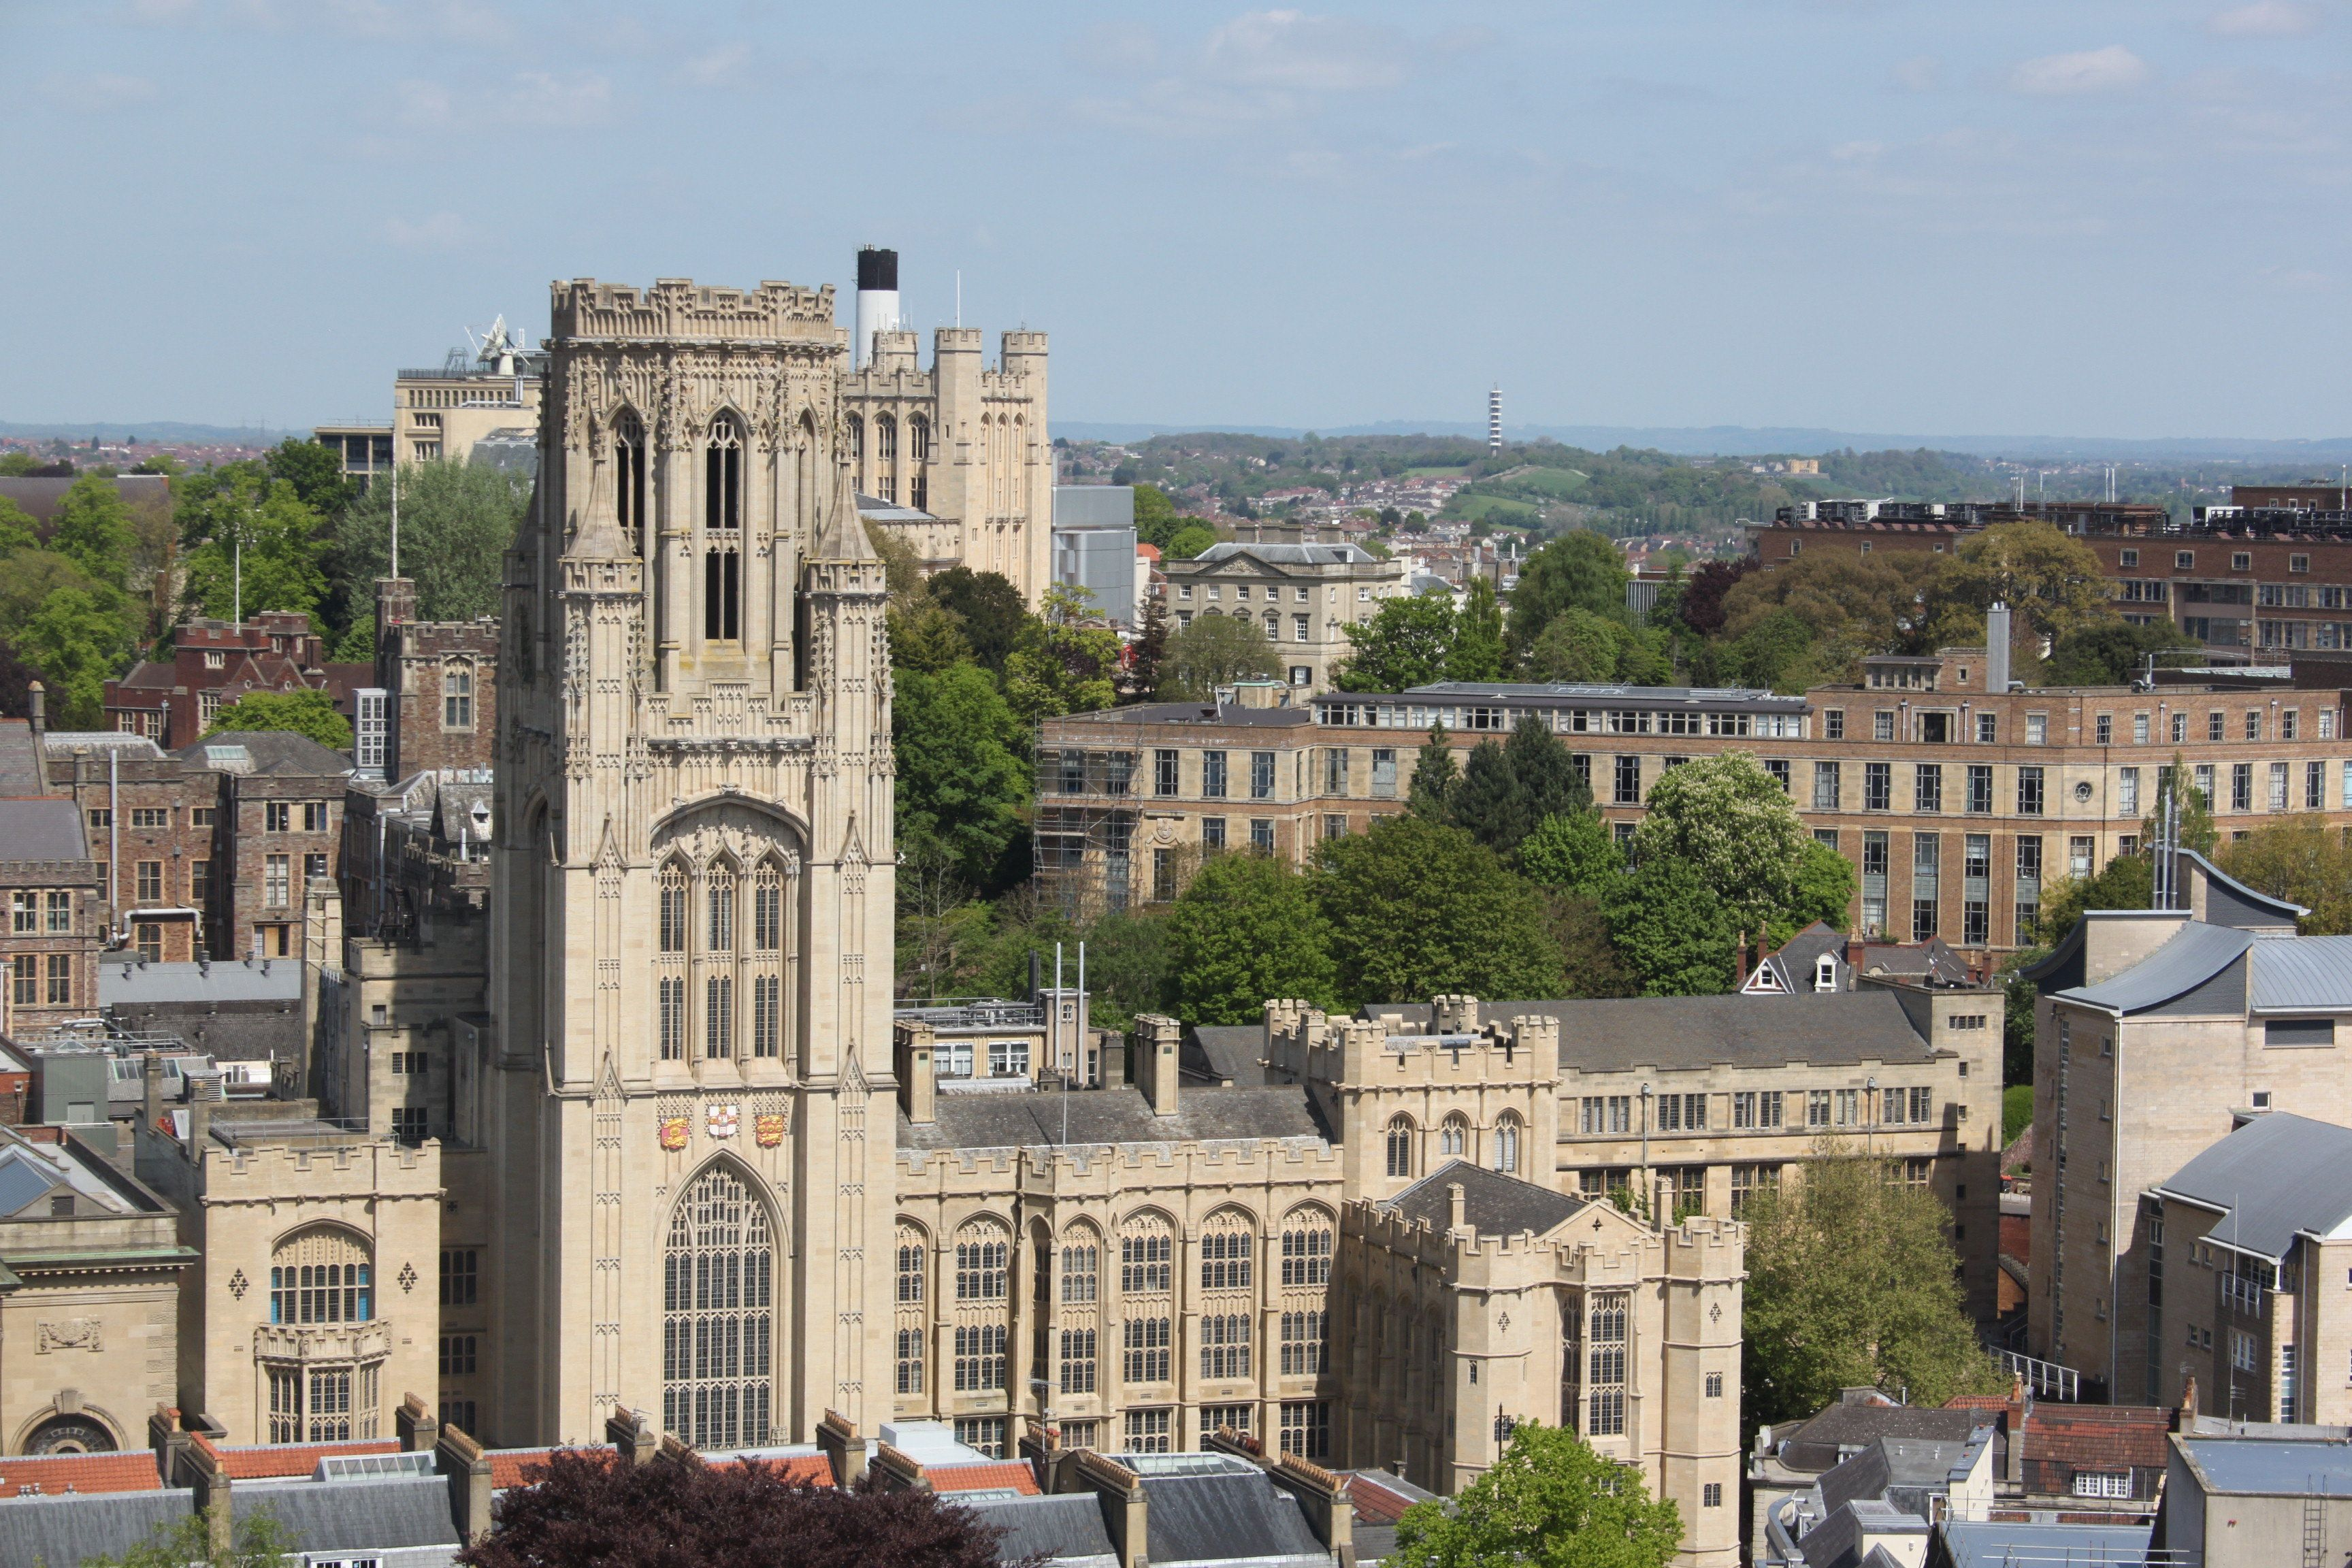 Scaburri is the fifth Bristol University student thought to have died bysuicide in the last six